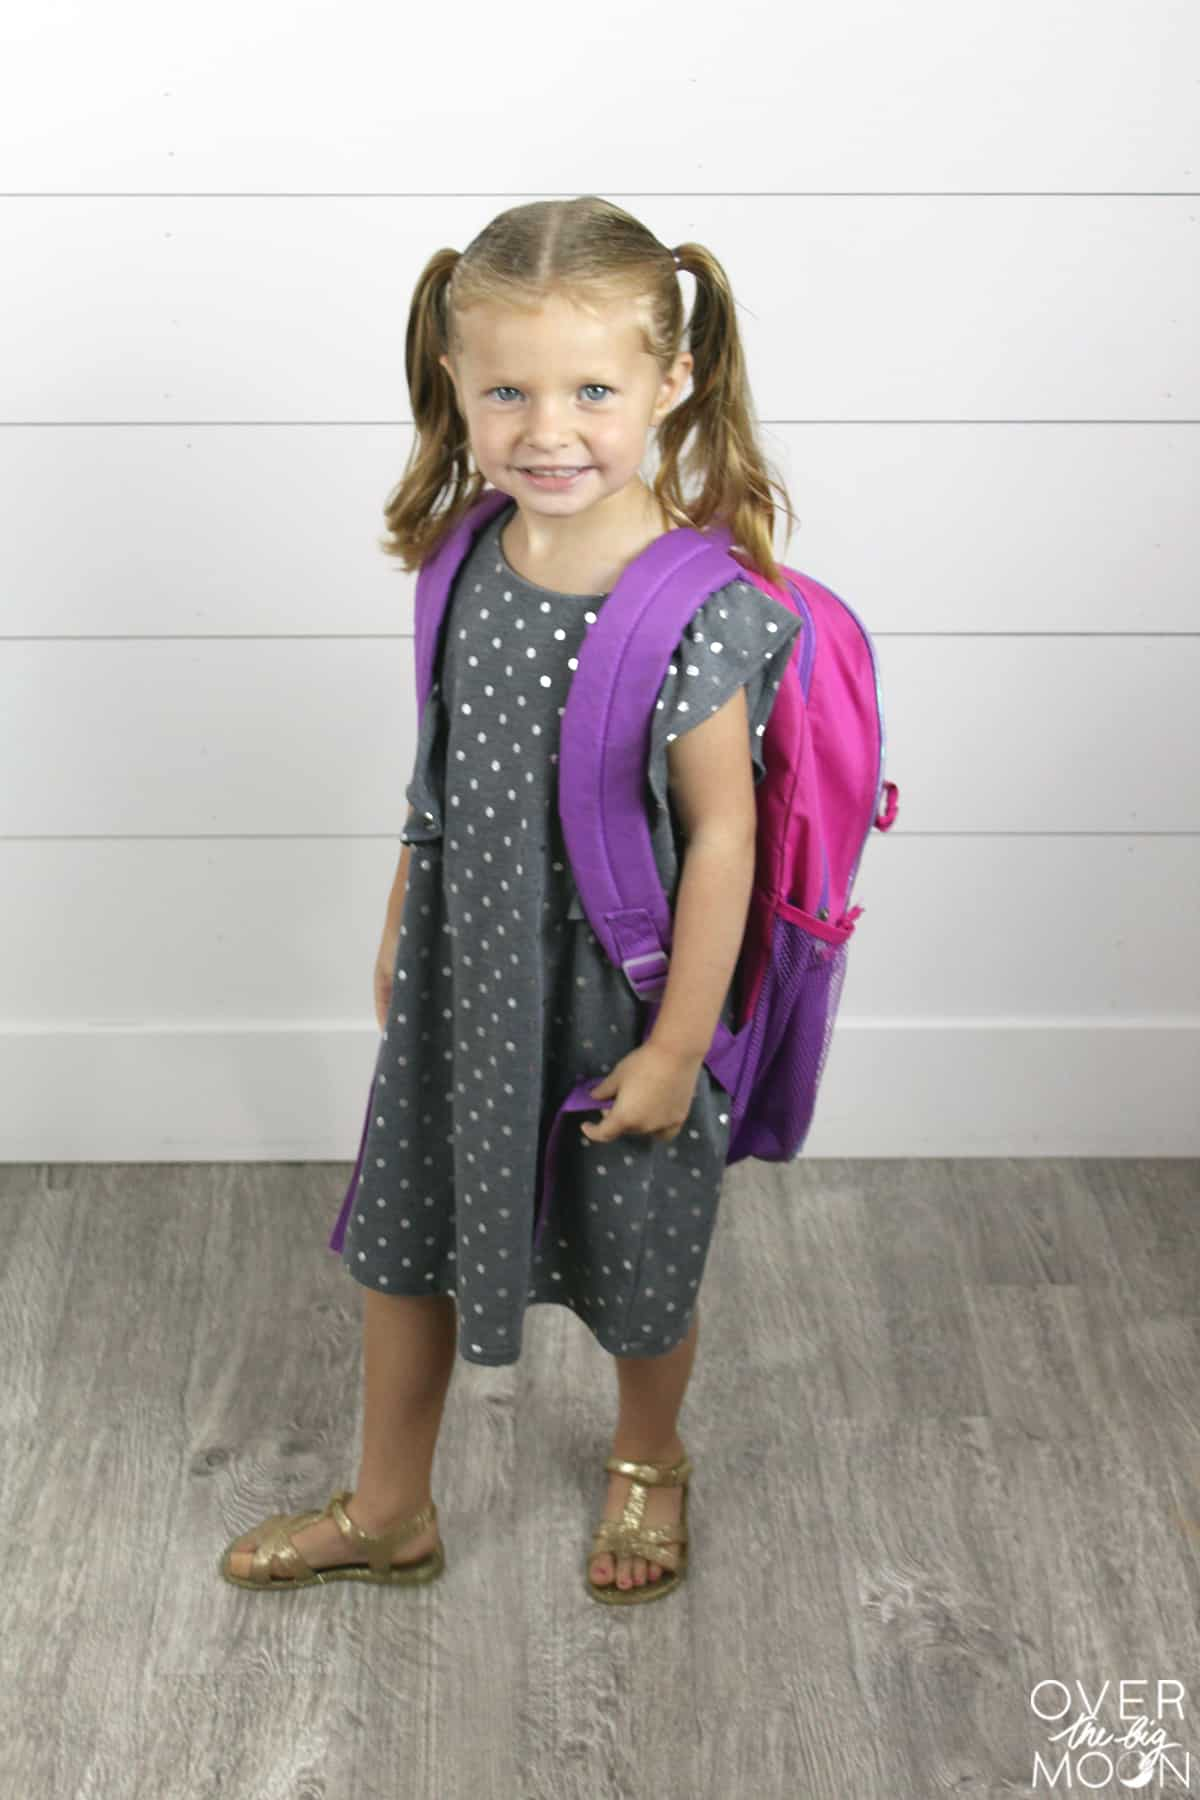 Smart Cookie Back to School Gift + Shopping Haul | www.overthebigmoon.com